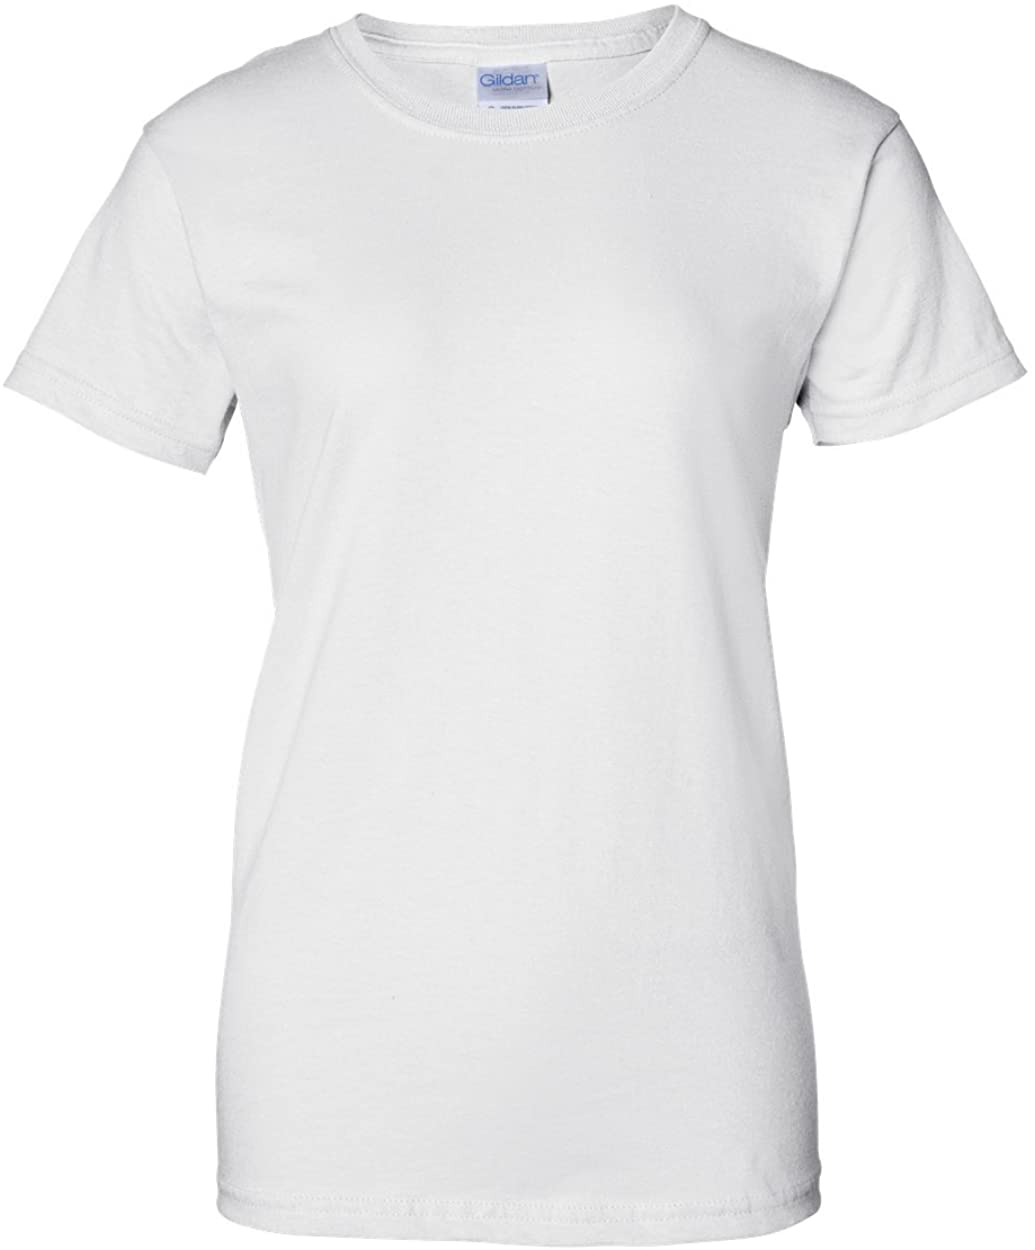 Gildan Ladies Ultra Cotton 100% Cotton T-Shirt, White, XS